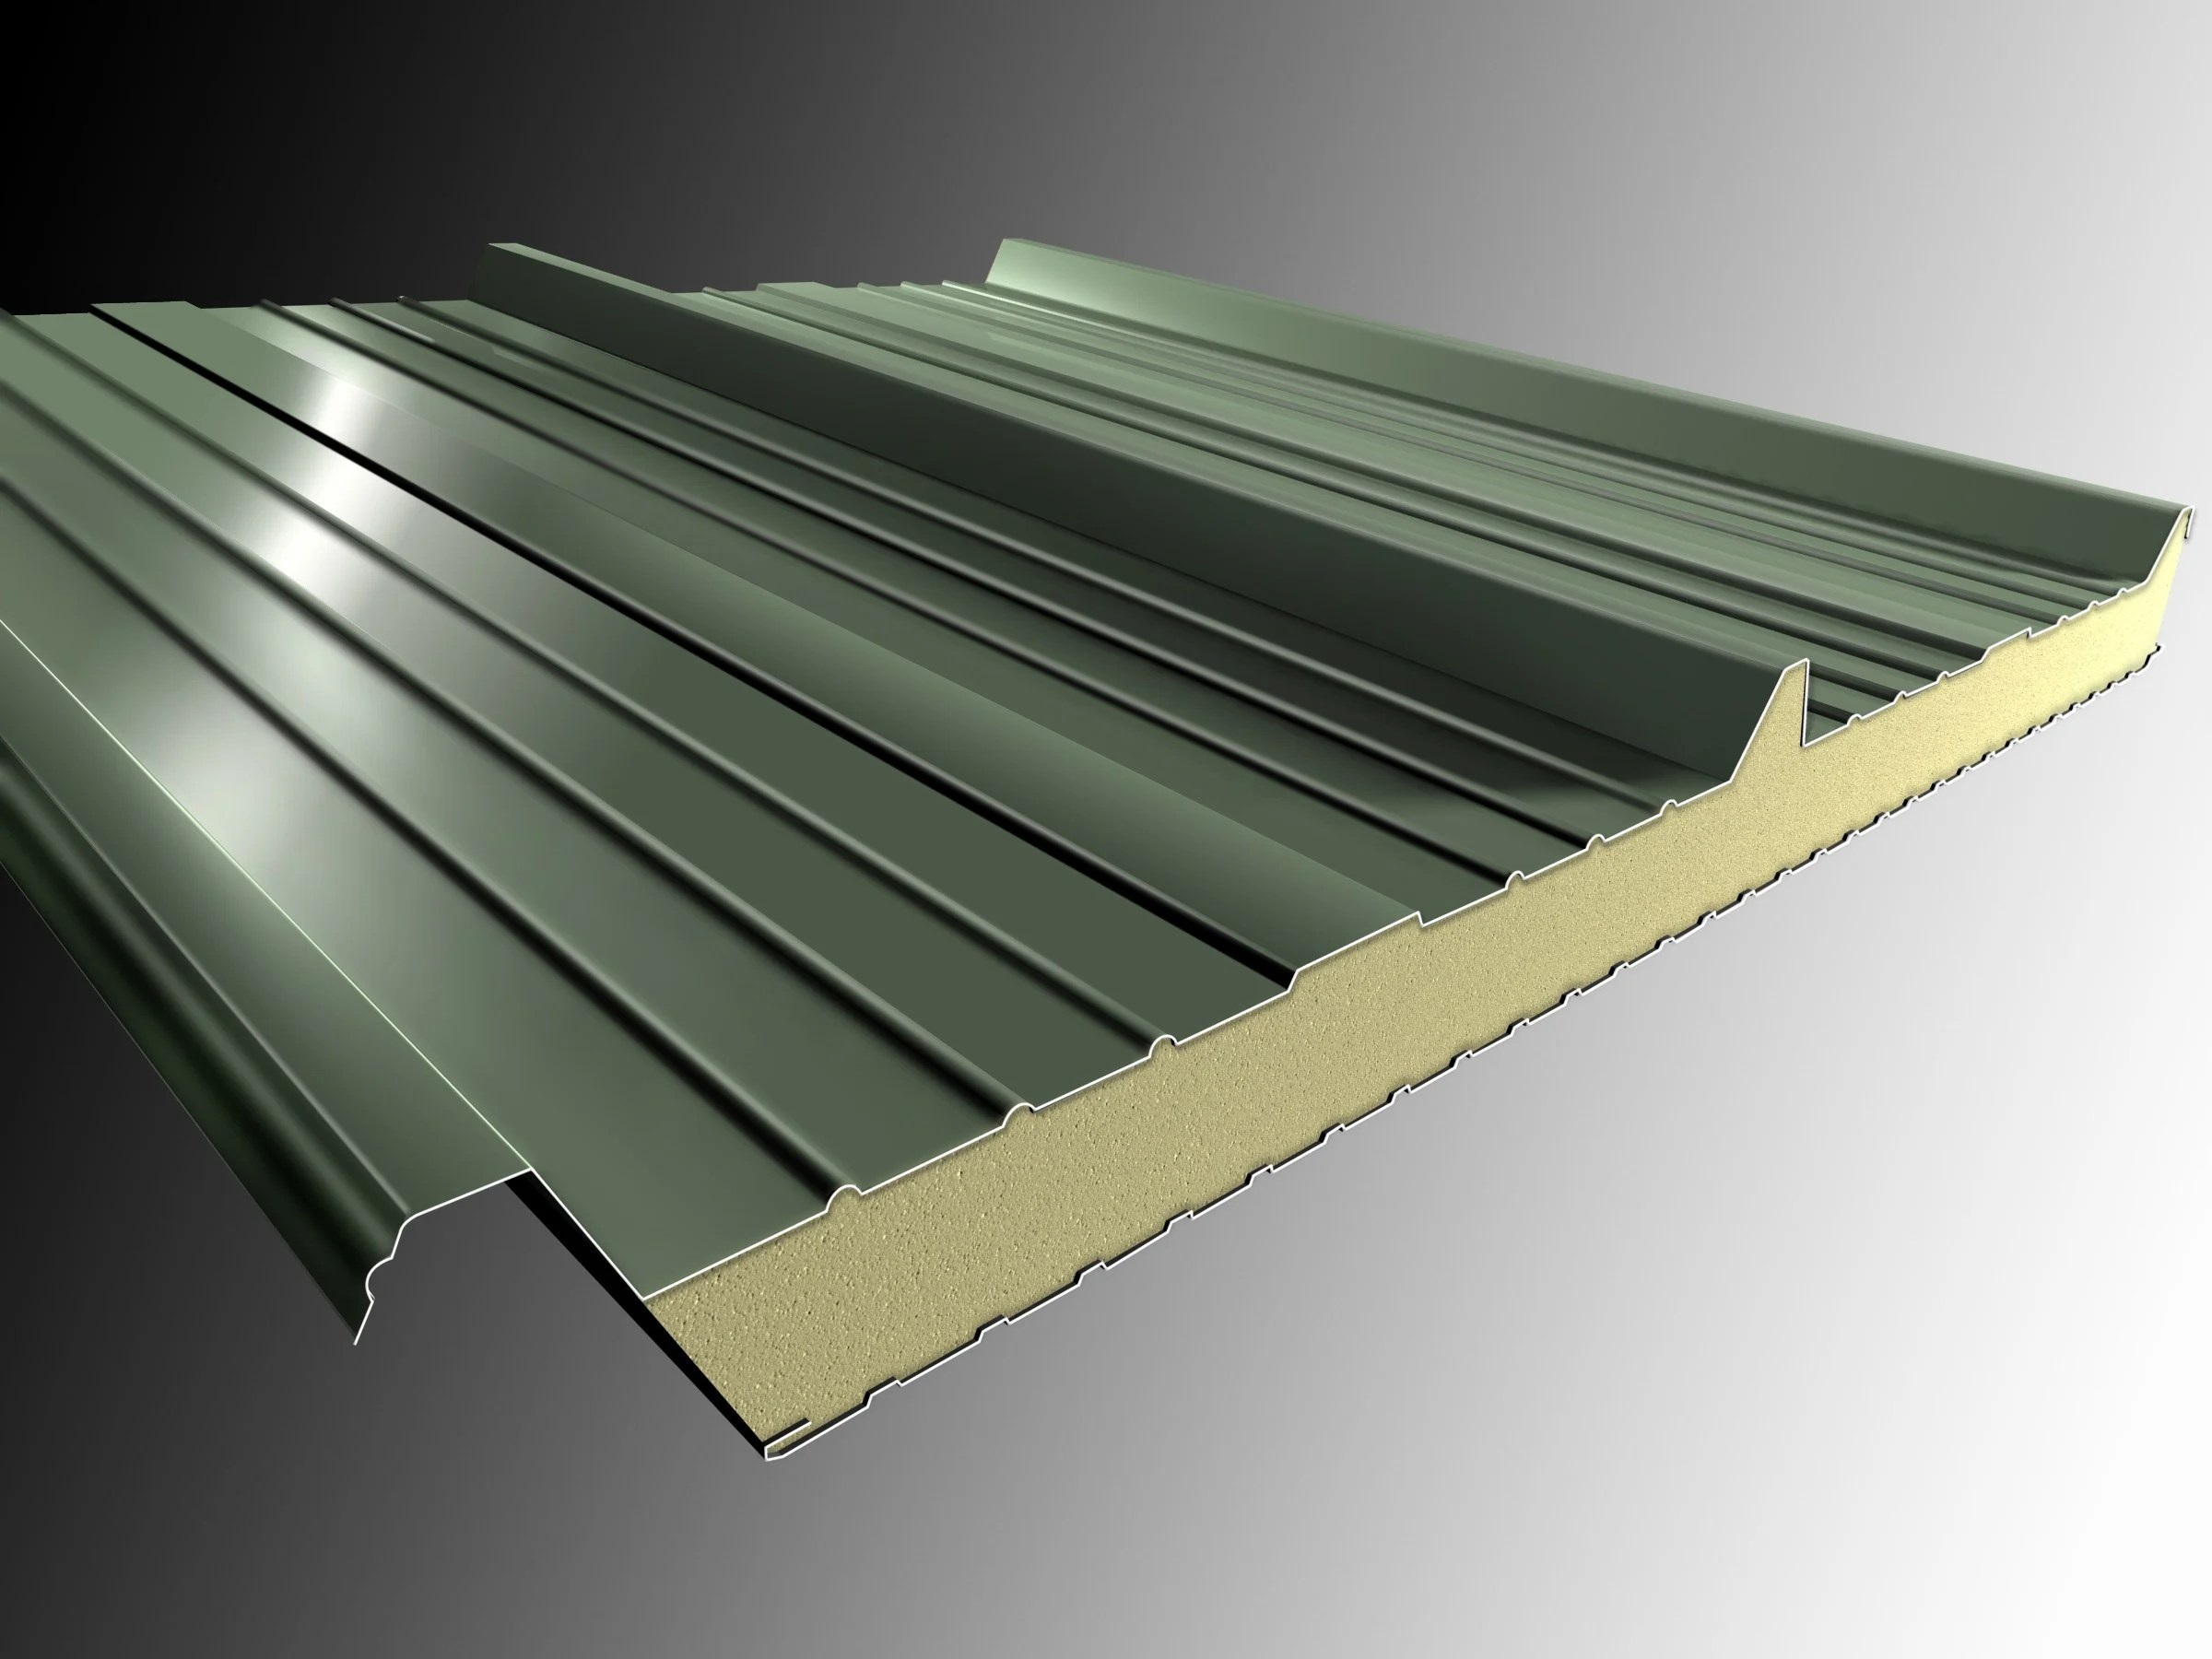 Plastic Roof For Patio INSULATED METAL PANEL FOR ROOF DELTA 3 ISOLPACK ROOF COLLECTION BY ISOLPACK